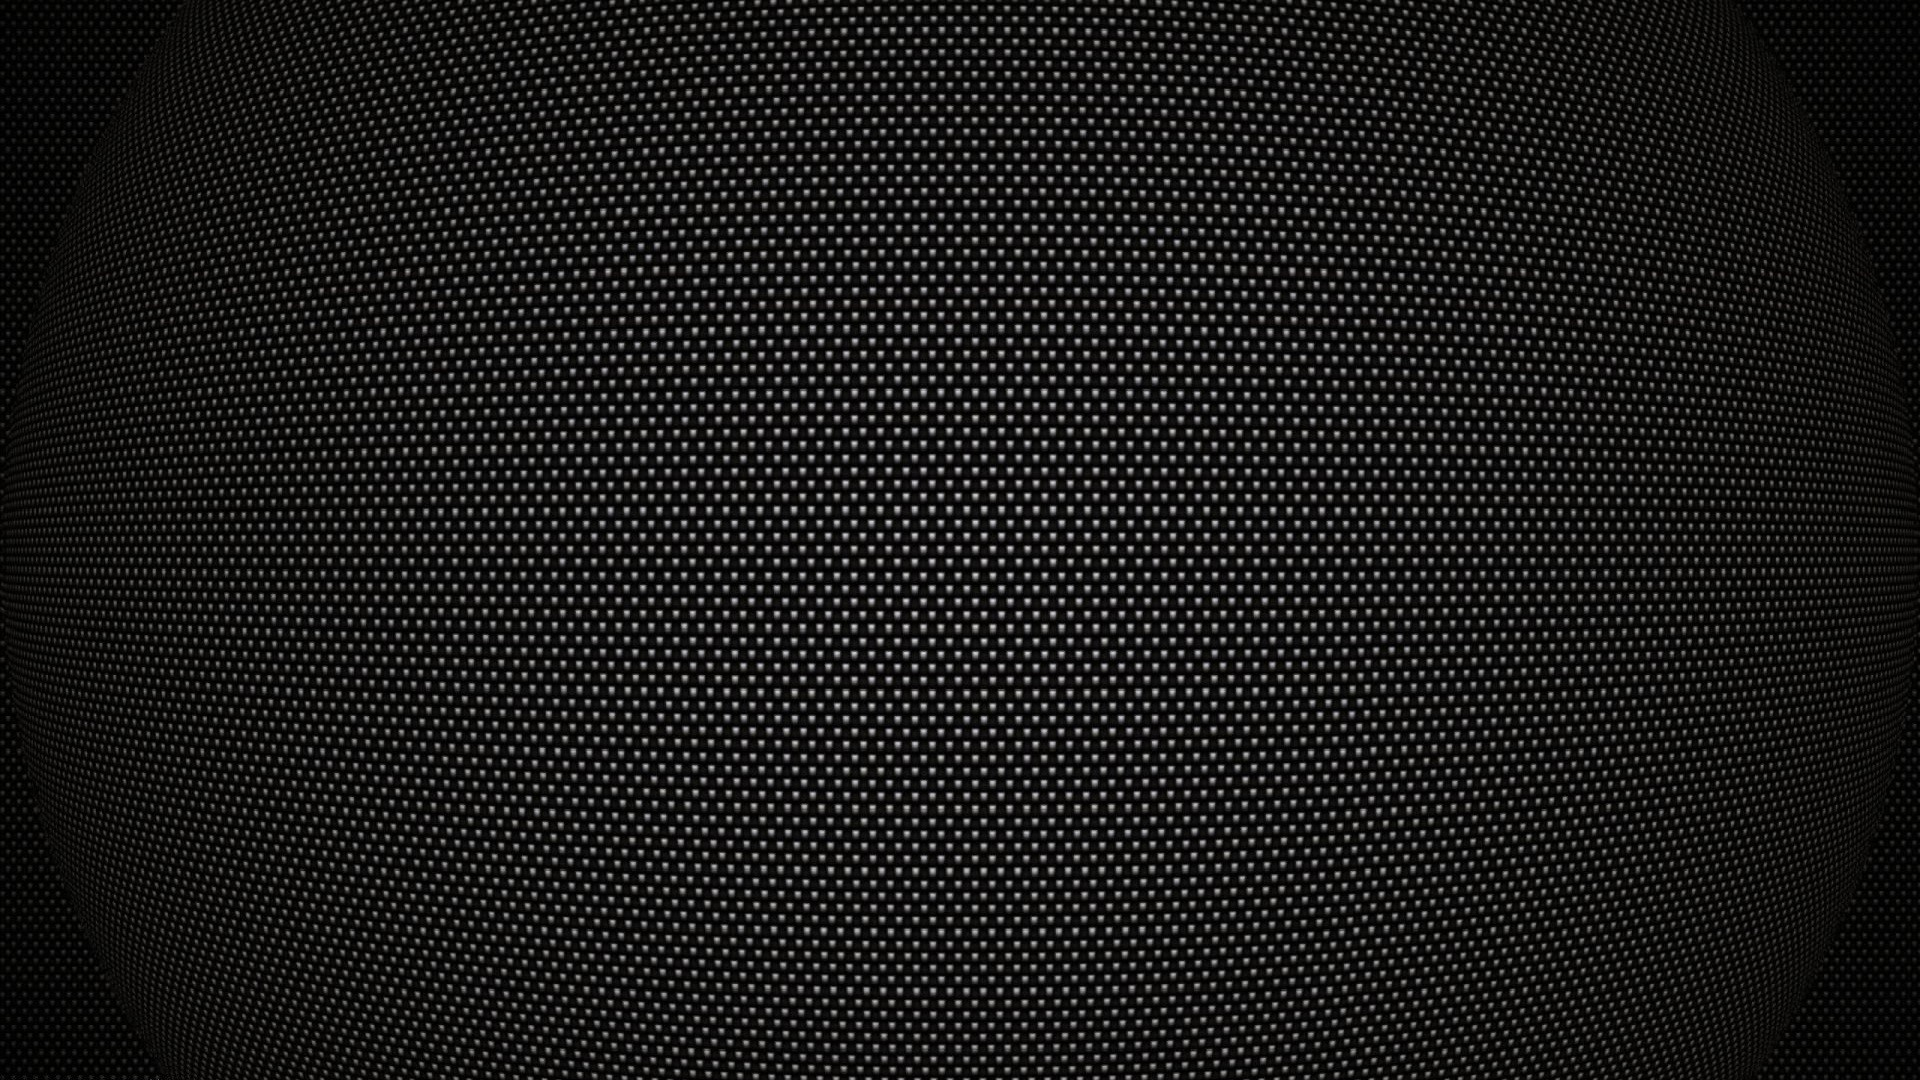 Plain Black Wallpaper 2 Hd Wallpaper